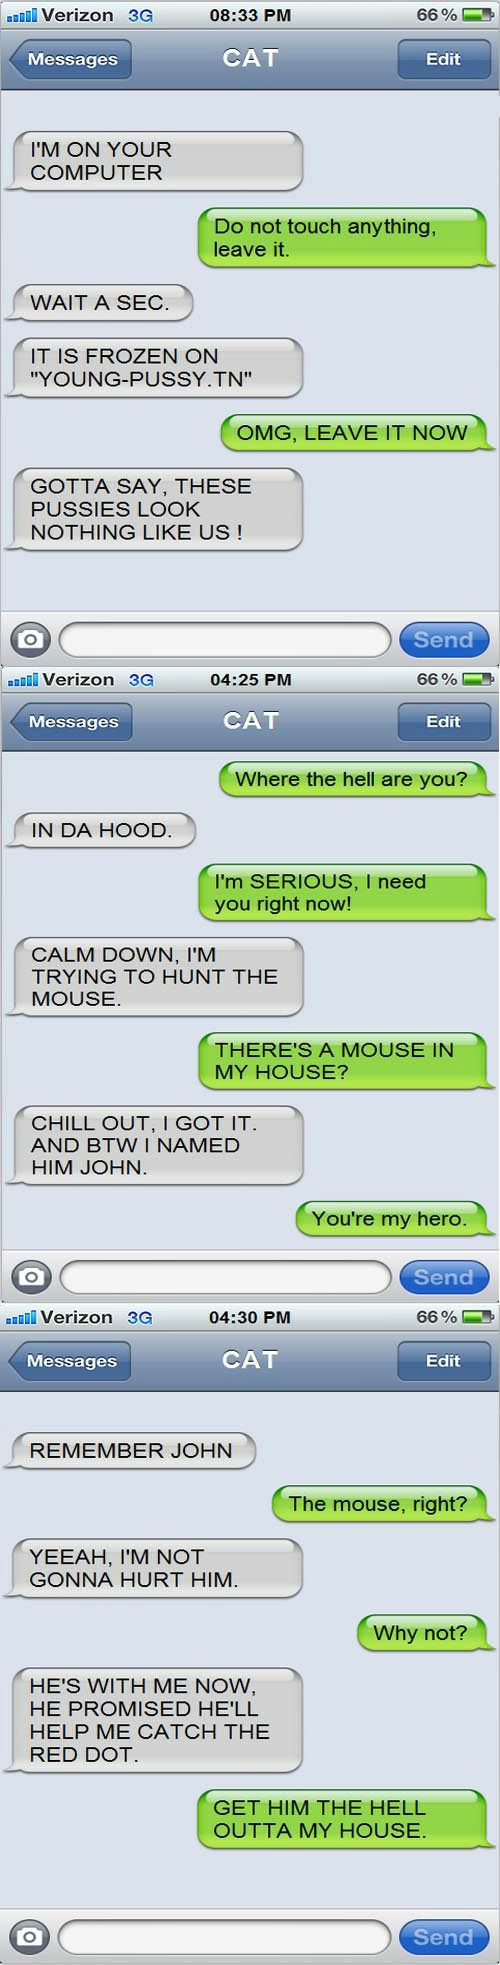 conversation SMS iPhone avec son chat texto text from cat